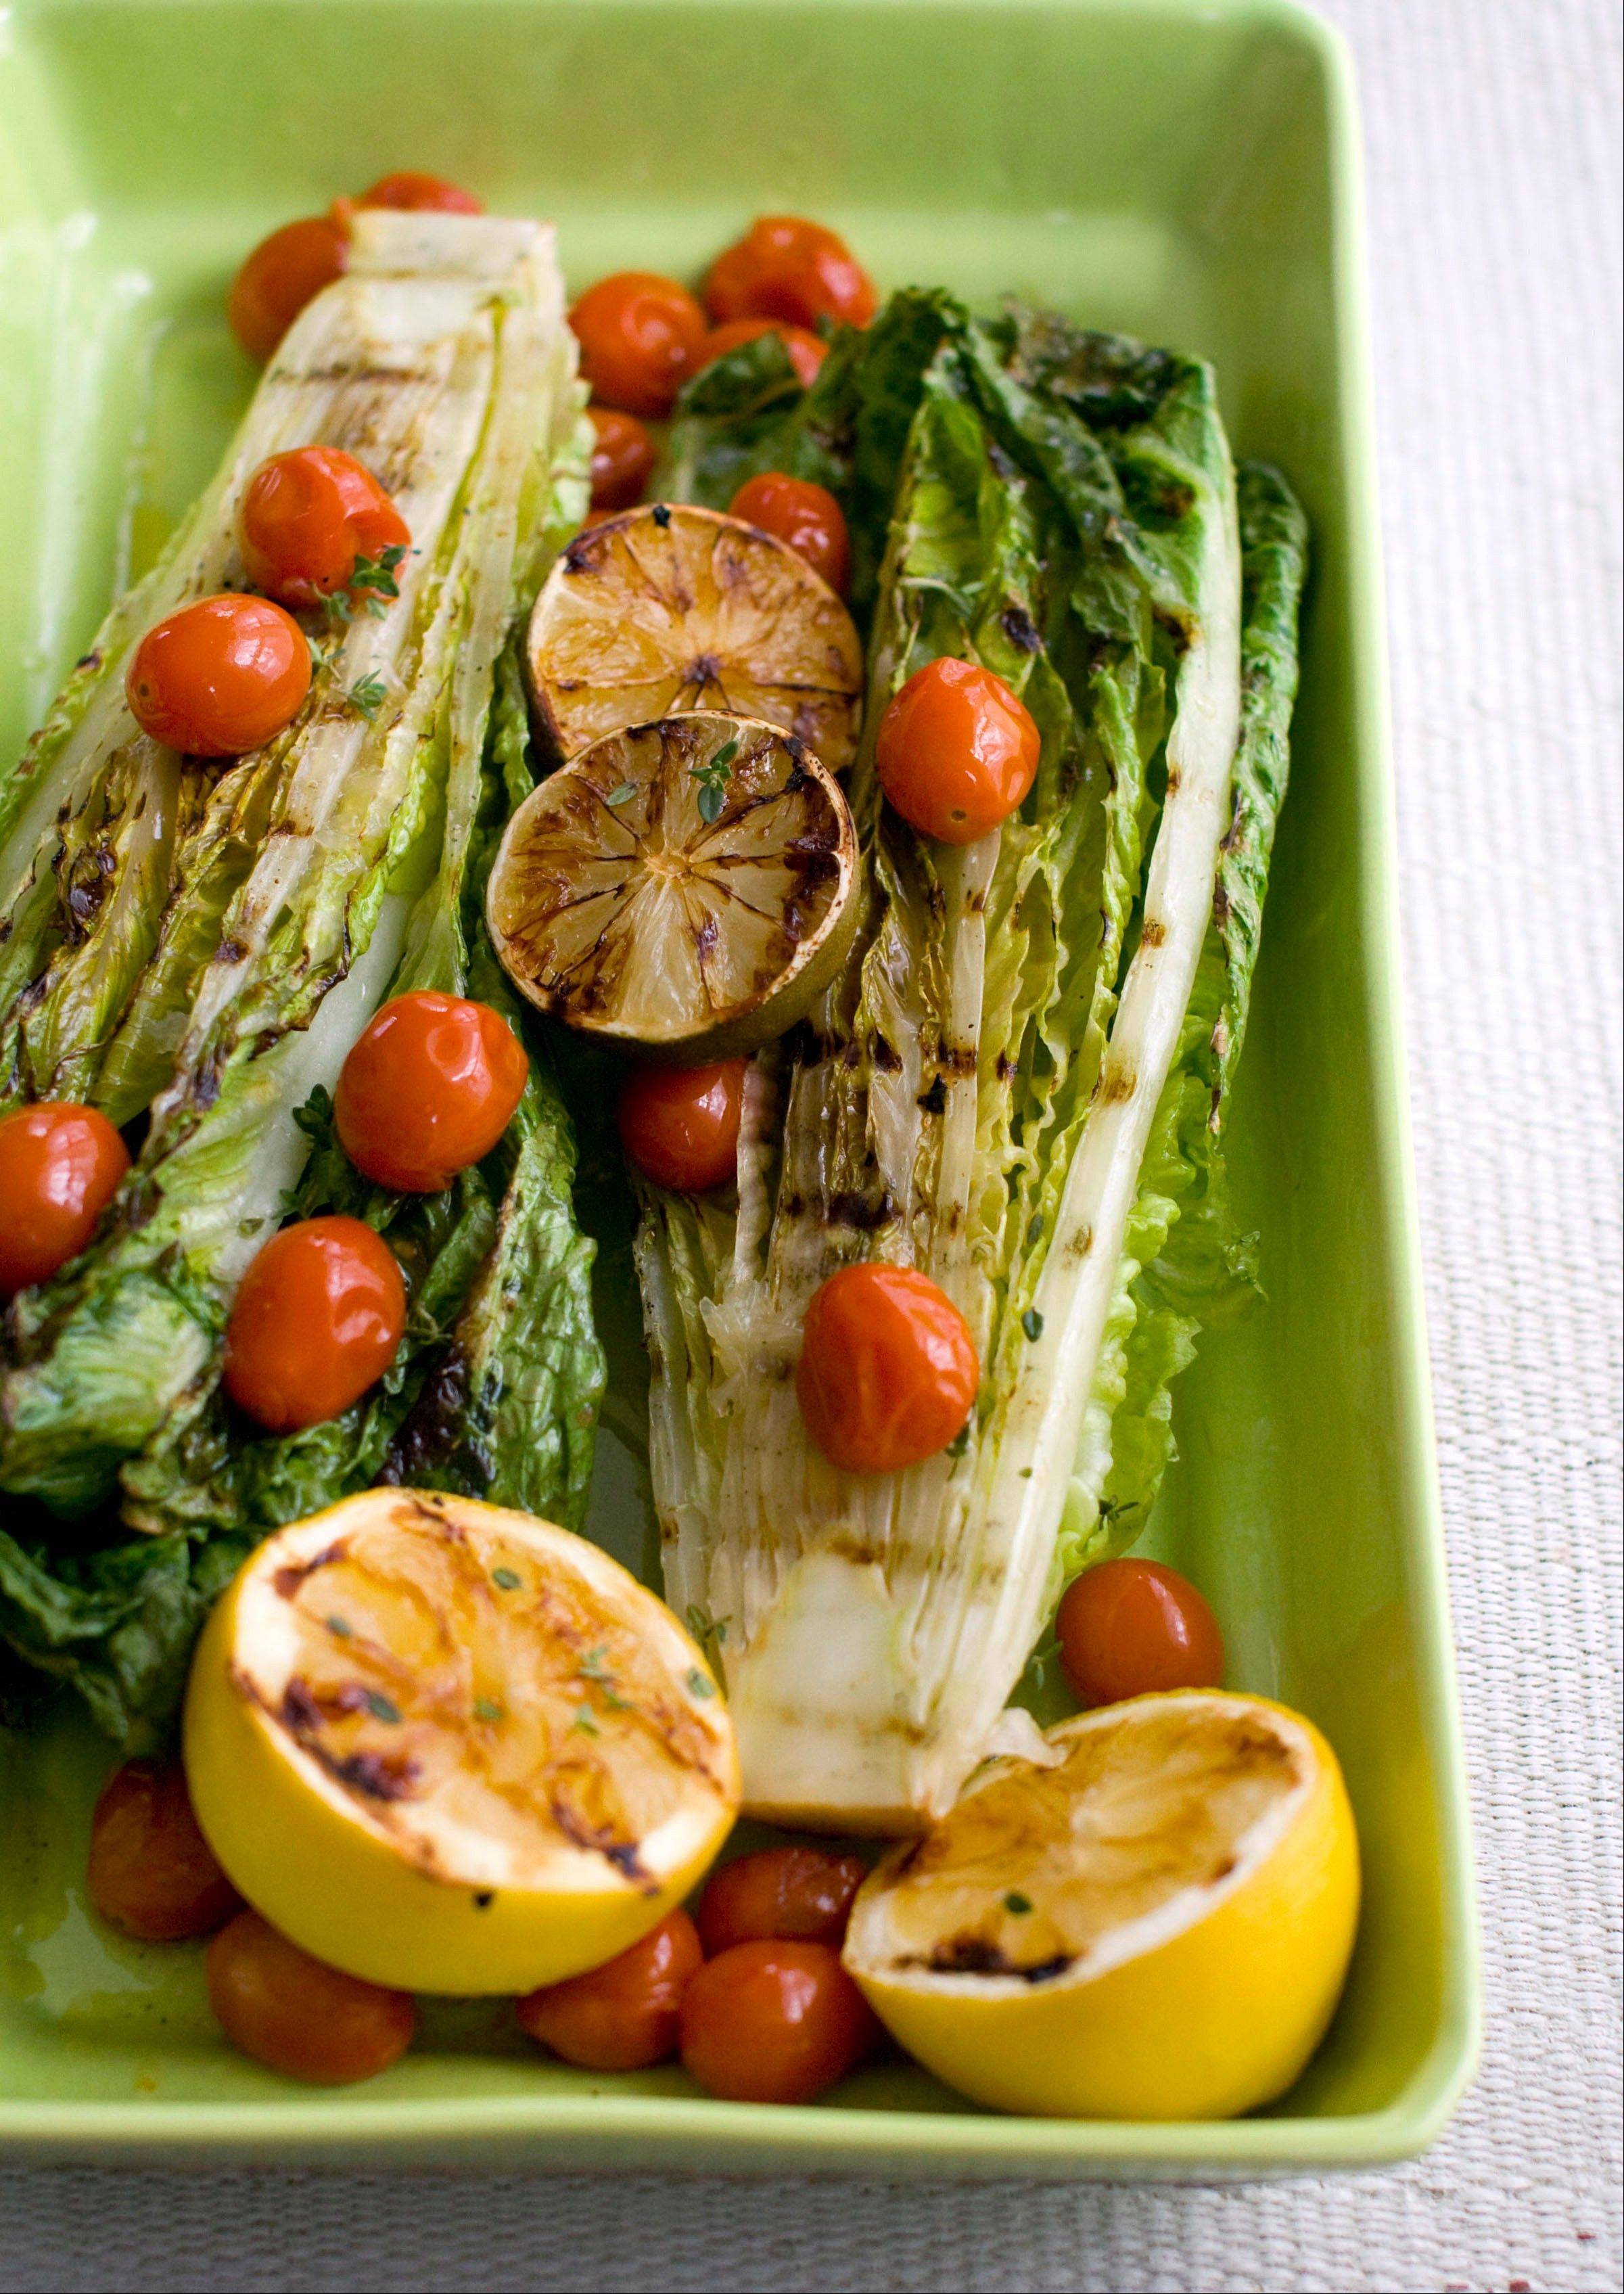 When firing up the grill for dinner, don't overlook romaine and other greens that develop deep flavors after a few minutes over hot flames.